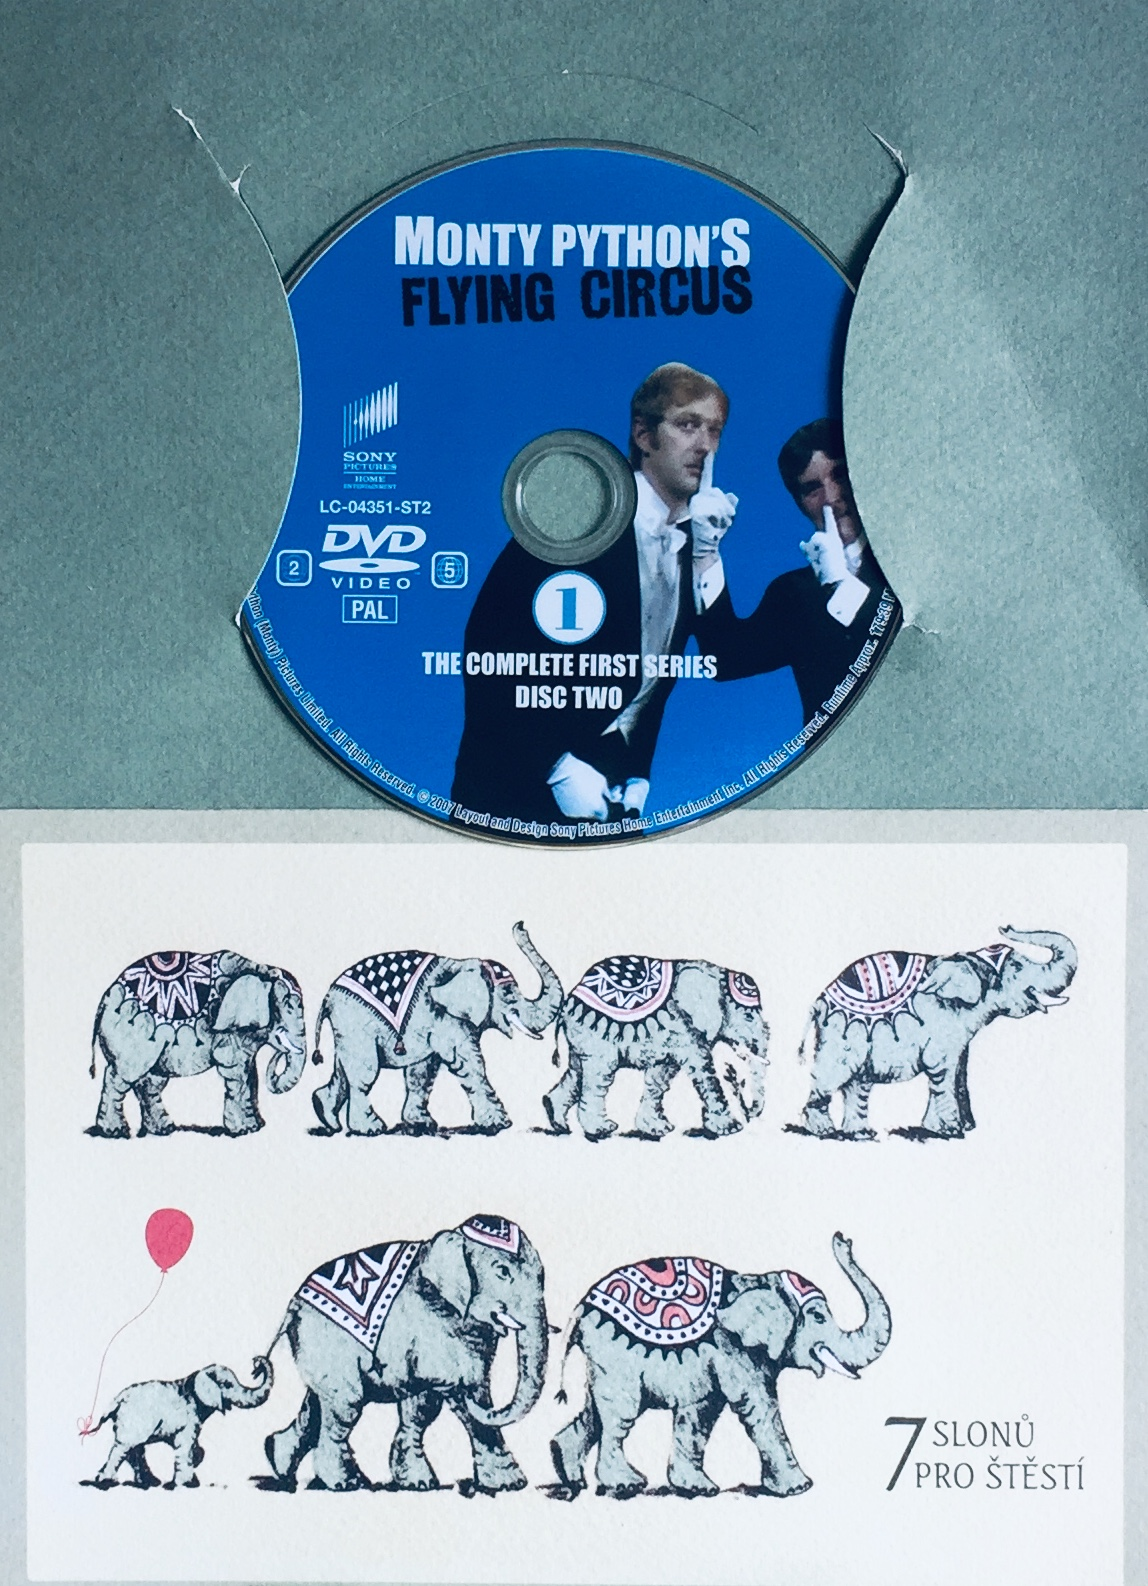 Monty Python's Flying Circus - The Complete First Series - Disc Two - DVD /dárkový obal/